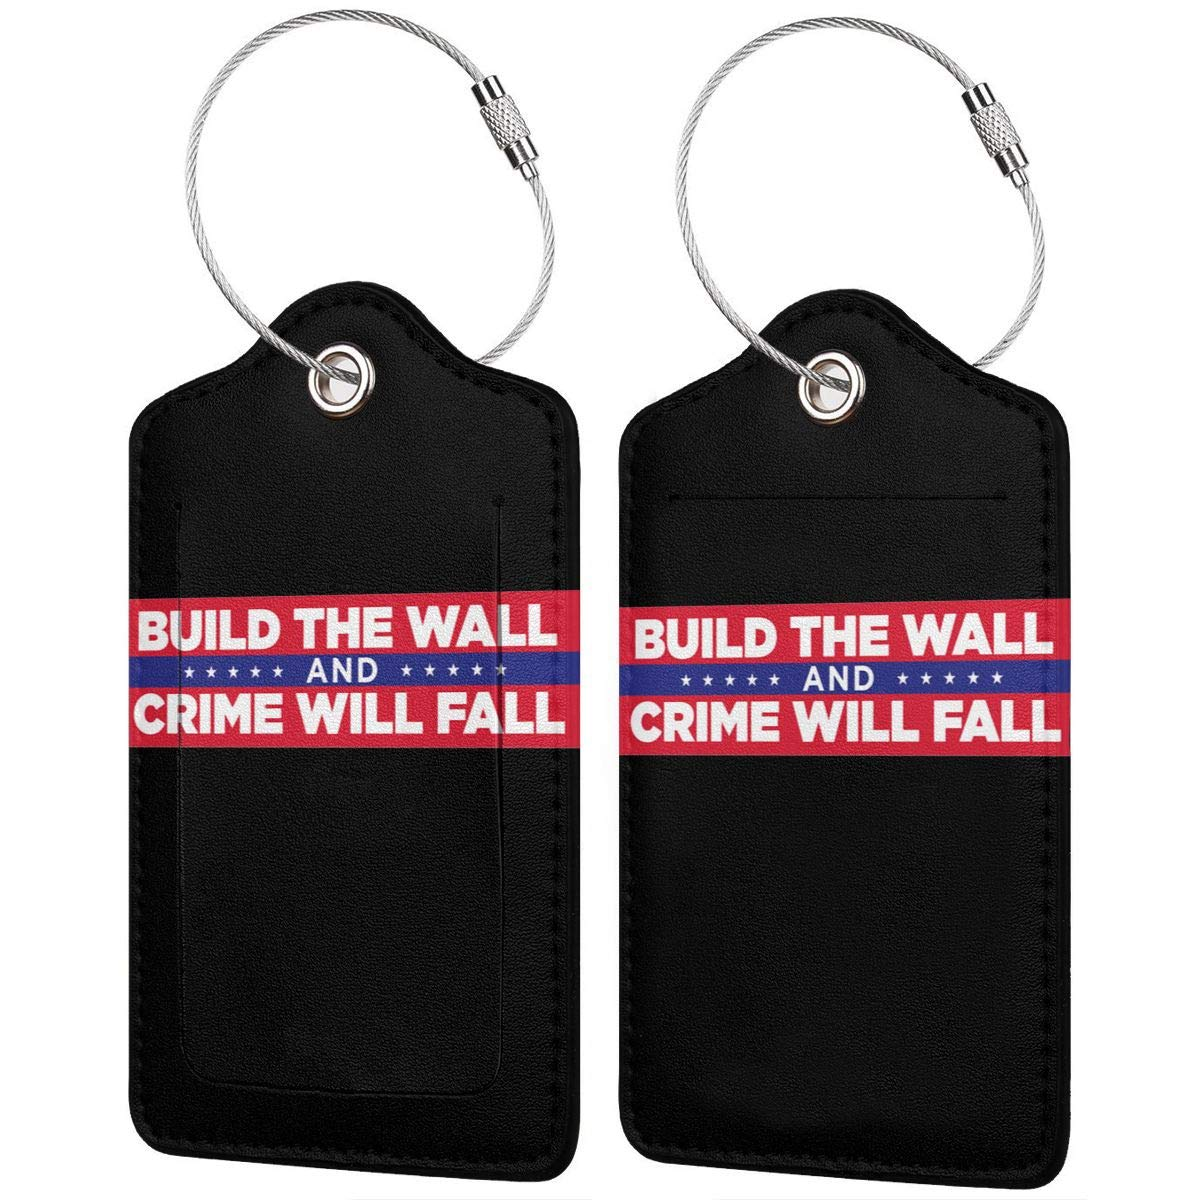 Build The Wall Trump Labels With Privacy Cover For Travel Bag Suitcase Travel Accessory Luggage ID Tag